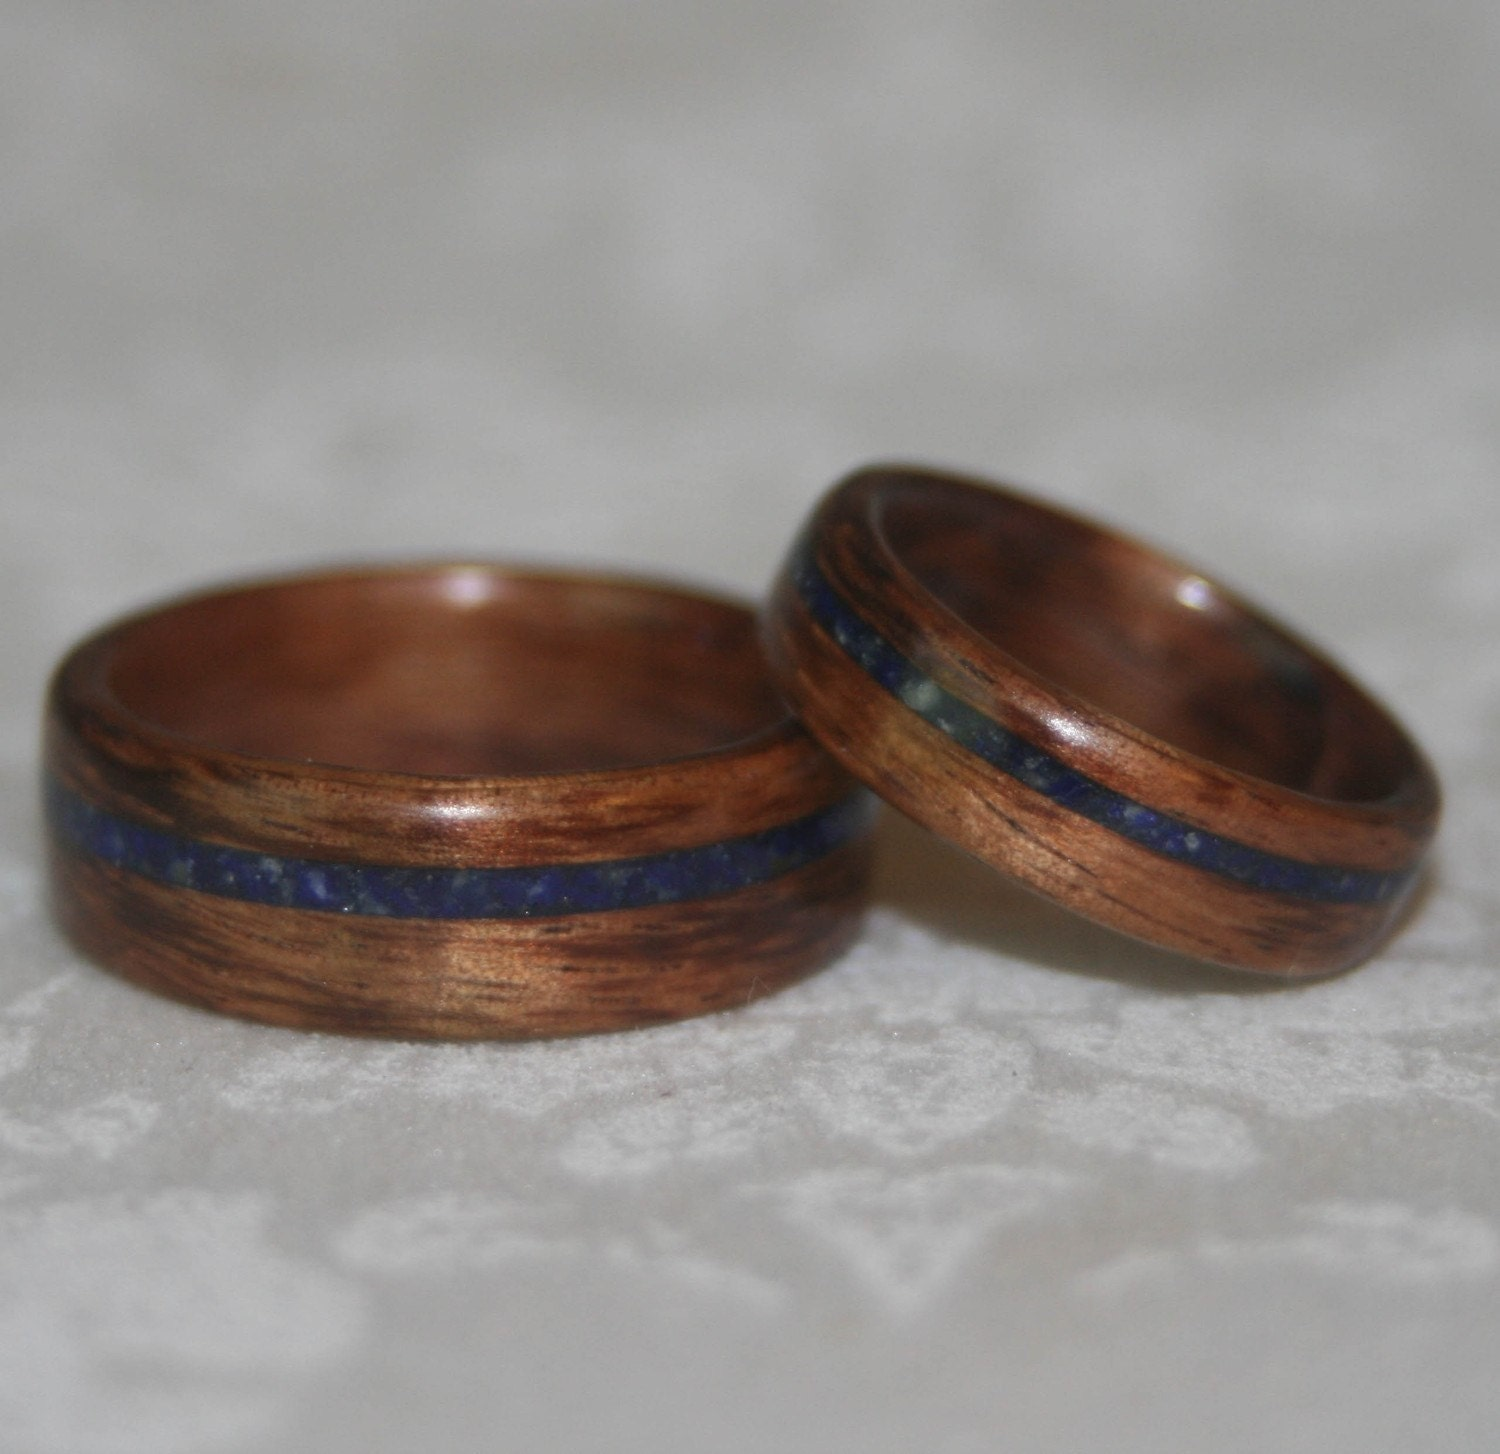 Crushed Gemstone For Inlays : Custom set of wooden rings with crushed stone inlay bent wood